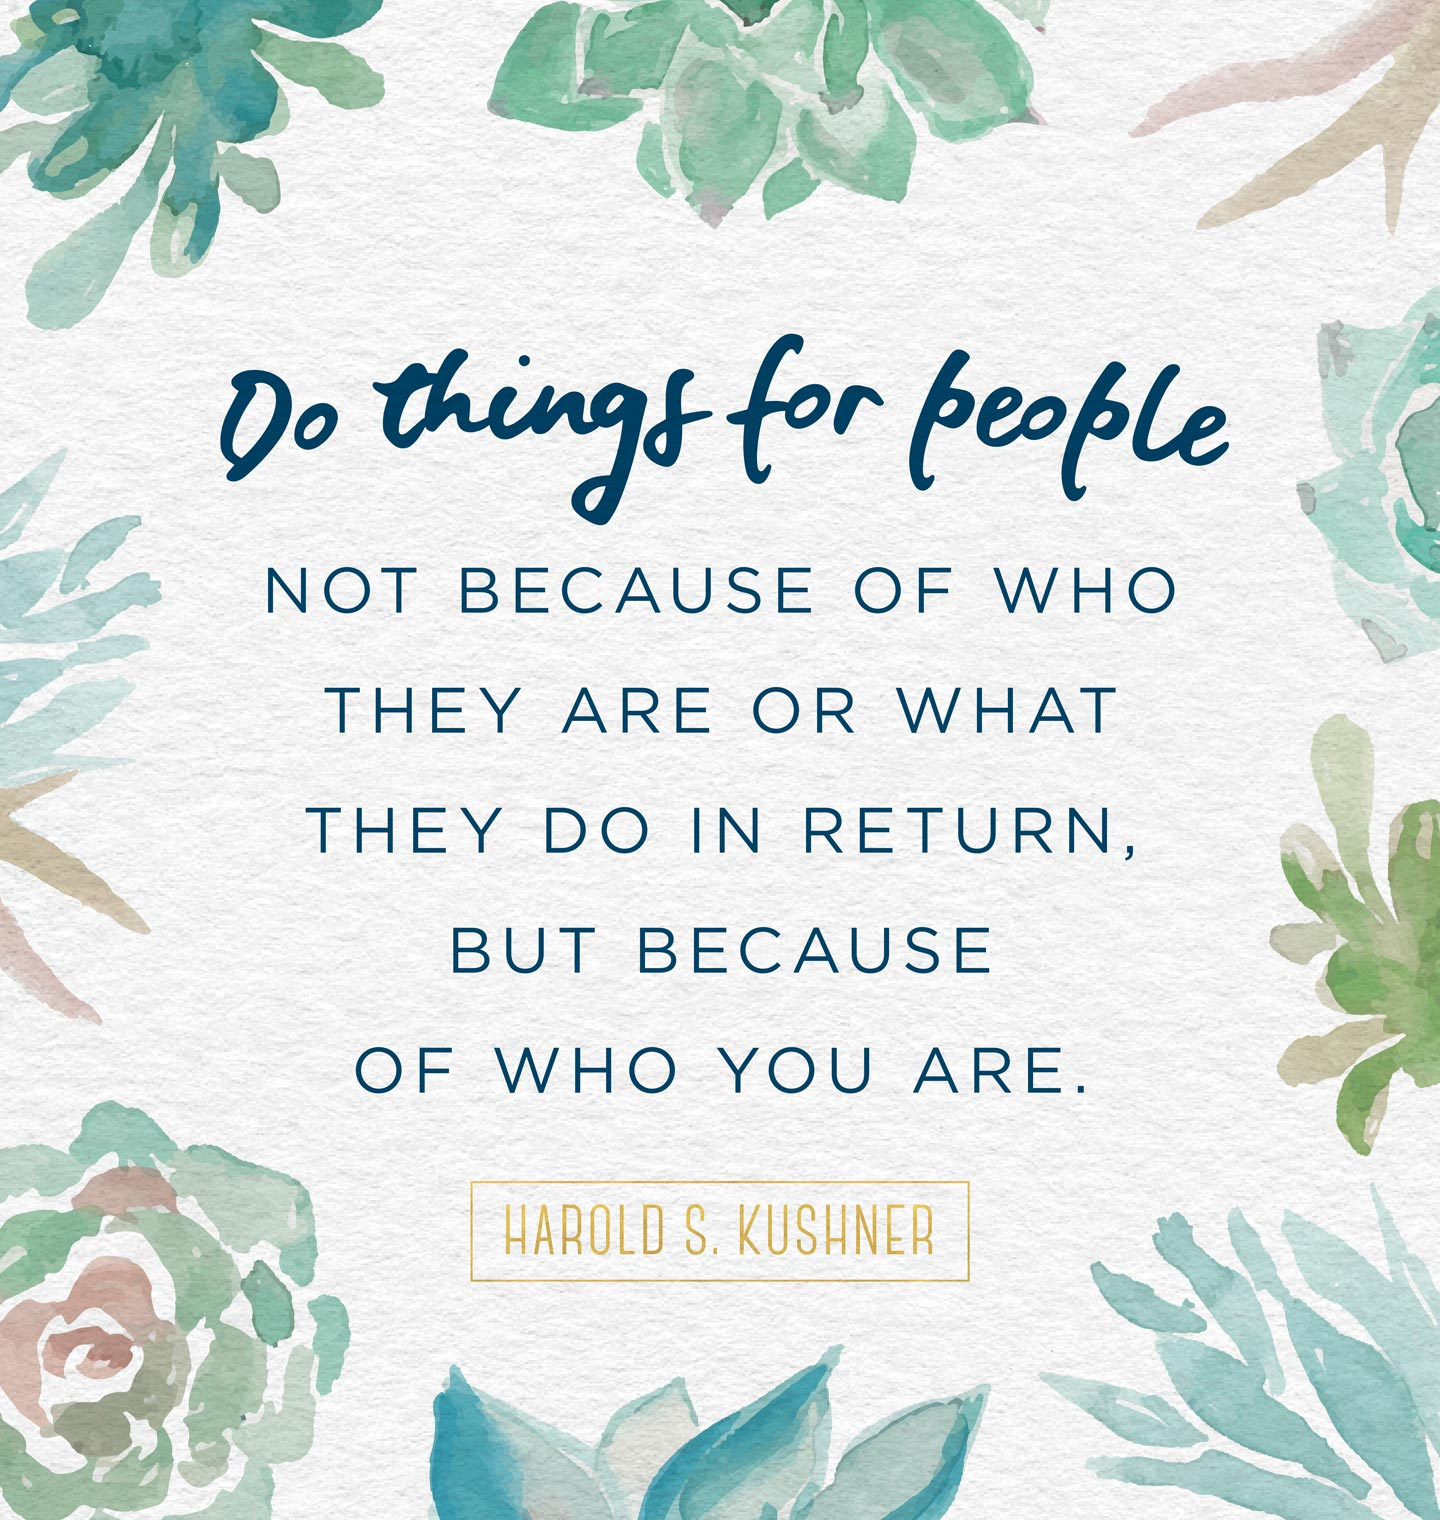 Inspirational Quotes For Kindness Day: Doreen McGettigan